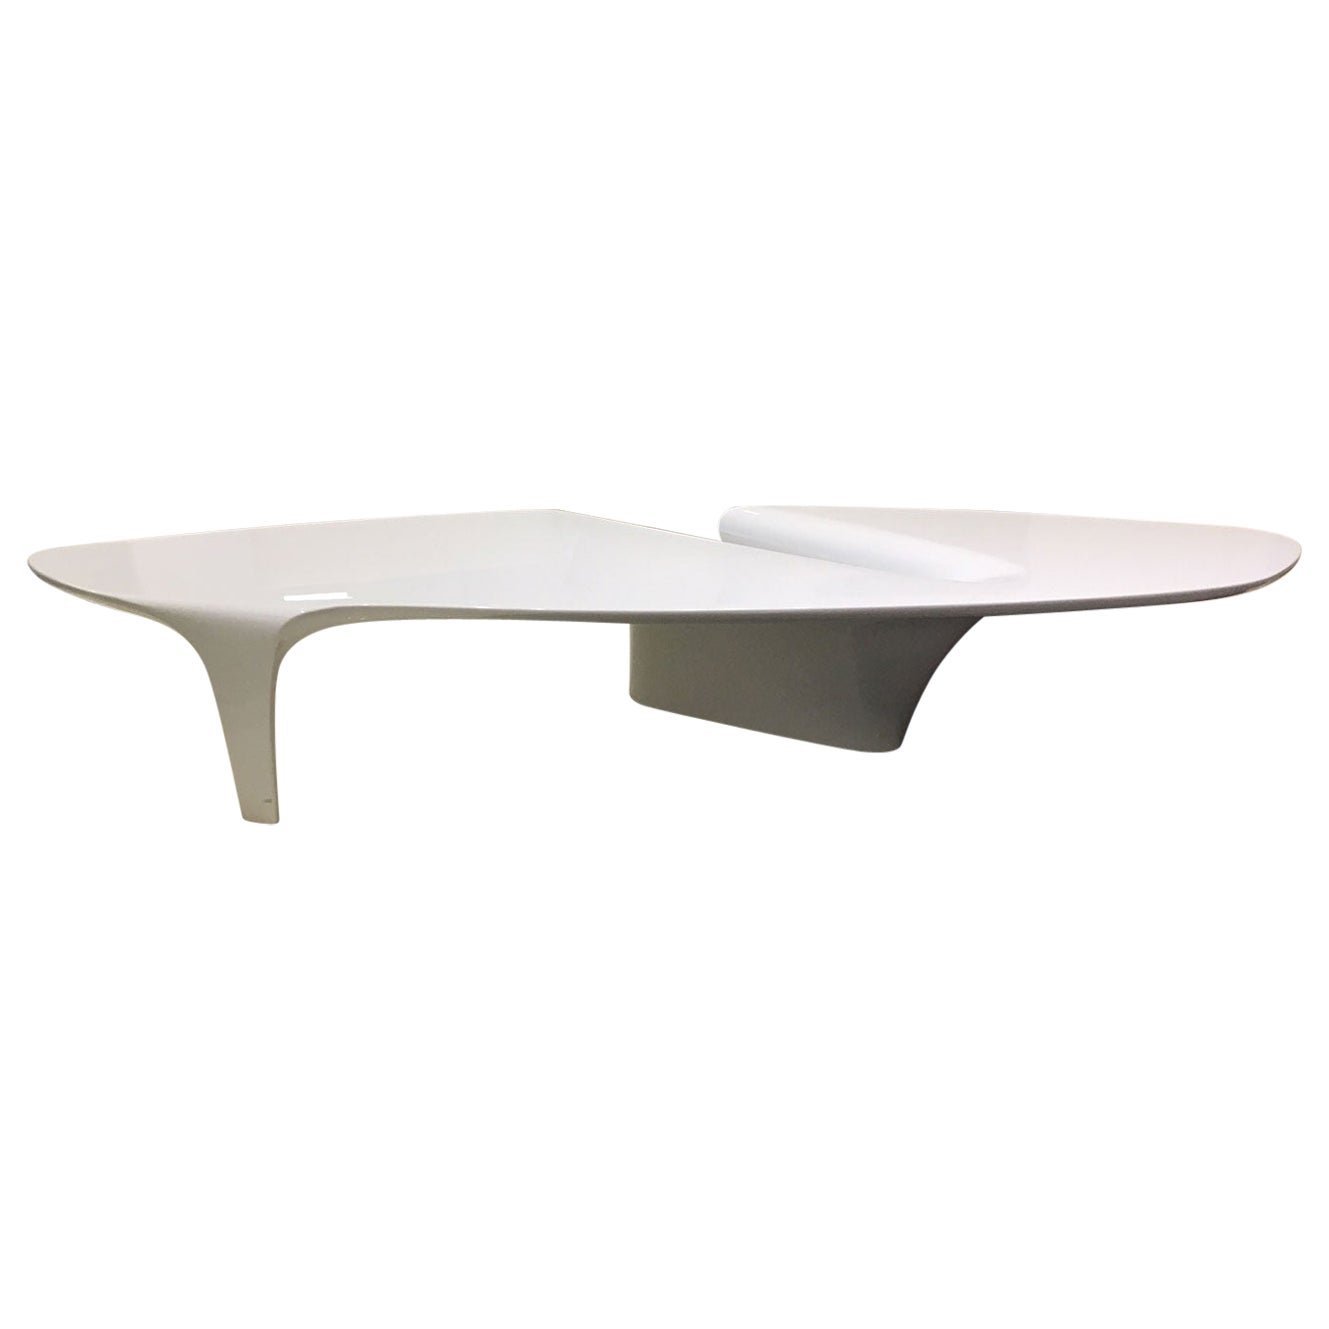 Contemporary White Lacquered Coffee Table by Fredrikson Stallard for Driade